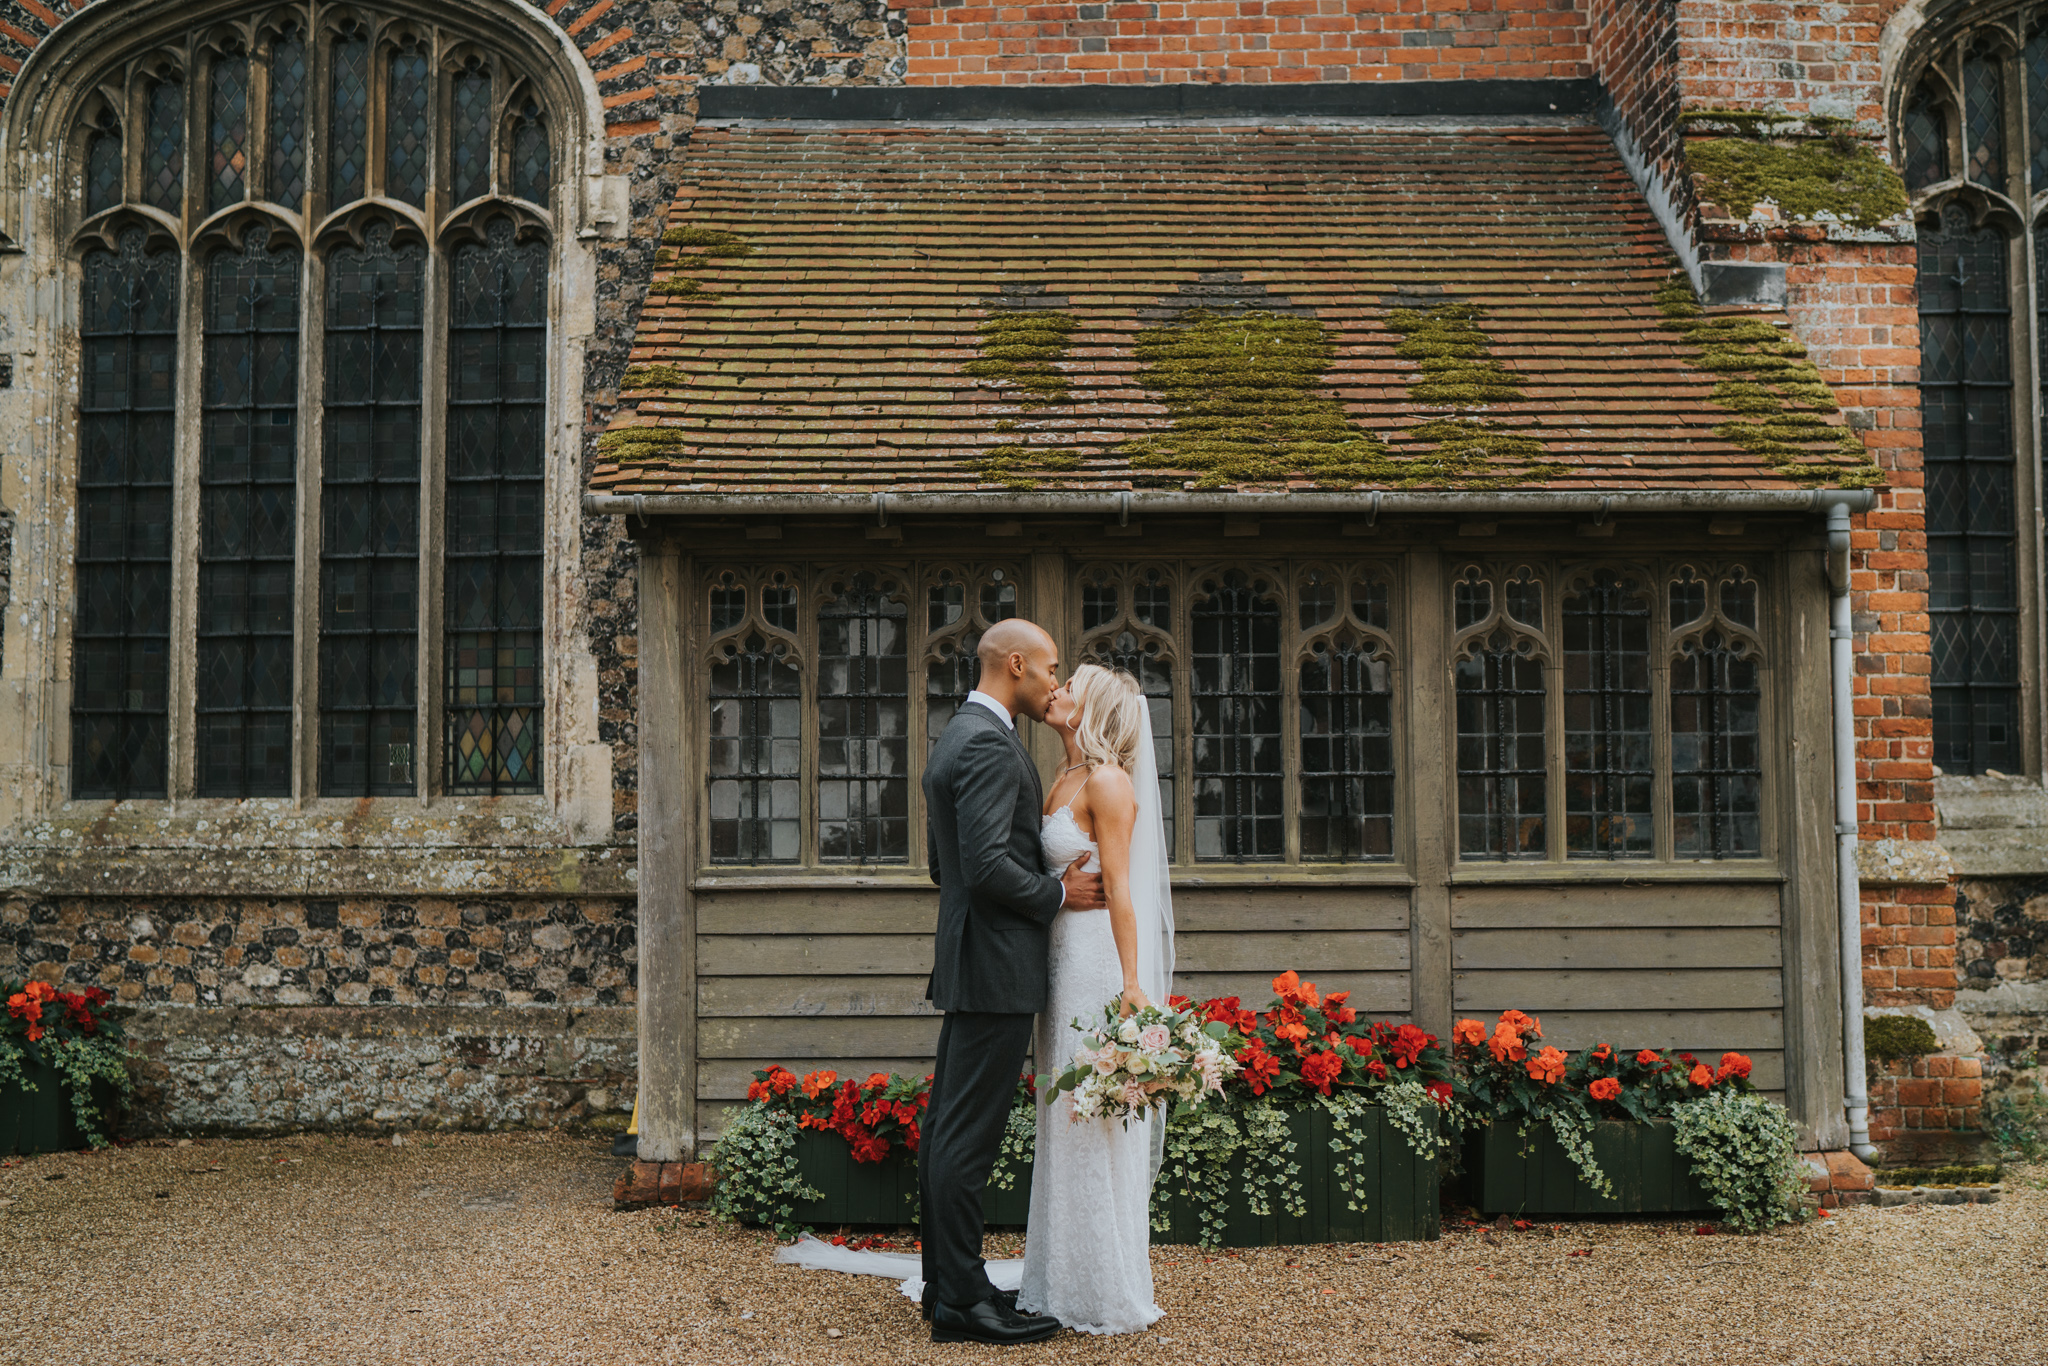 intimate-english-church-wedding-sarah-alex-colchester-essex-grace-elizabeth-colchester-essex-alternative-wedding-lifestyle-photographer-essex-suffolk-norfolk-devon (62 of 92).jpg